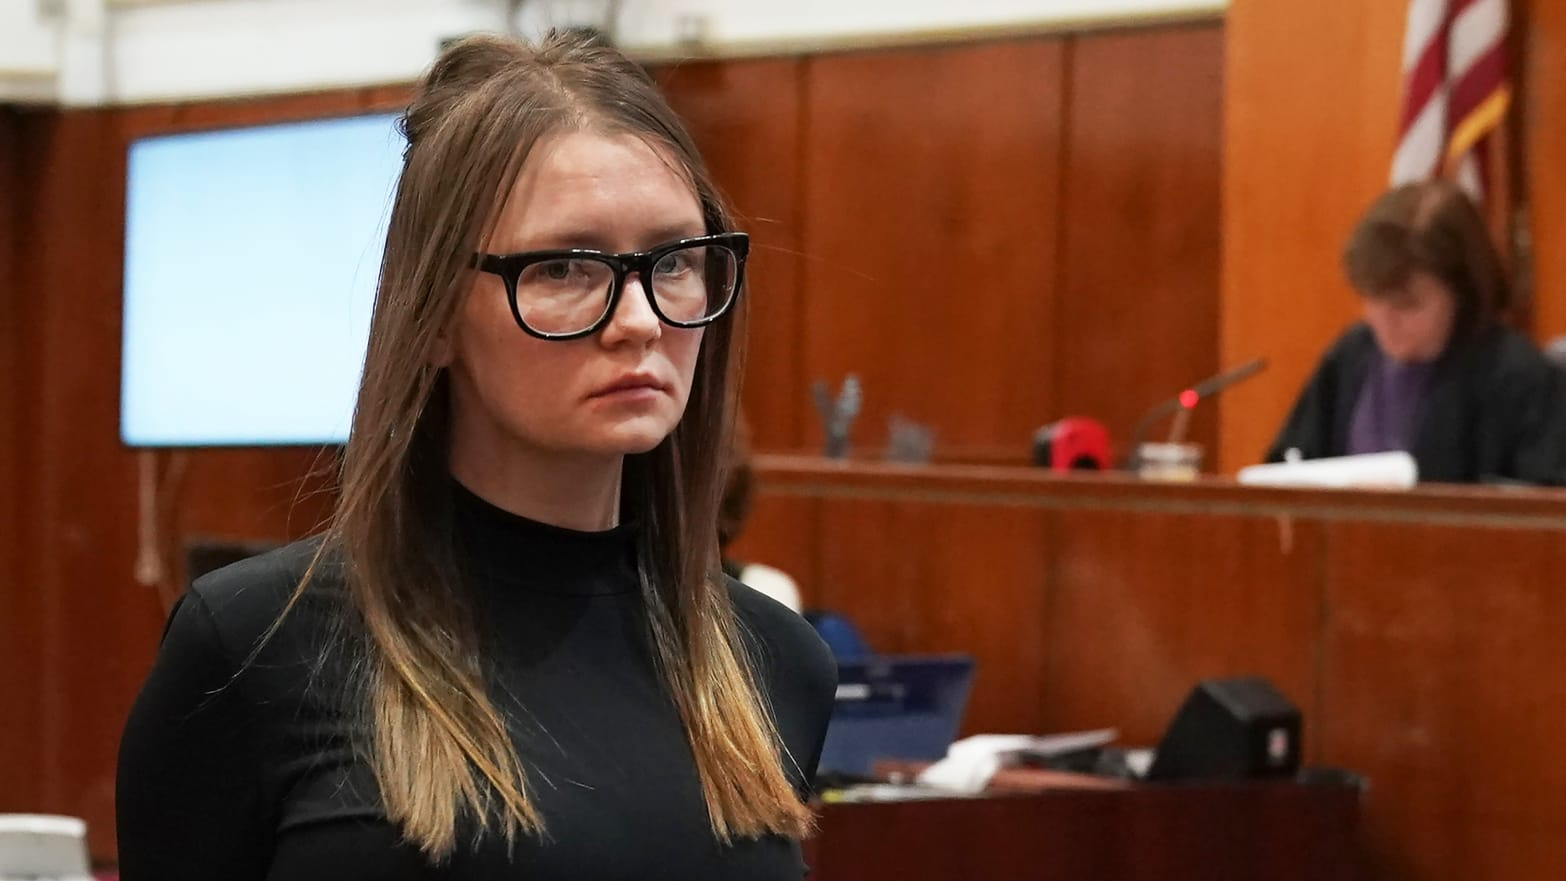 Anna Delvey, 'SoHo Grifter,' Becomes Art World Muse in New Installation About Courtroom Fashion